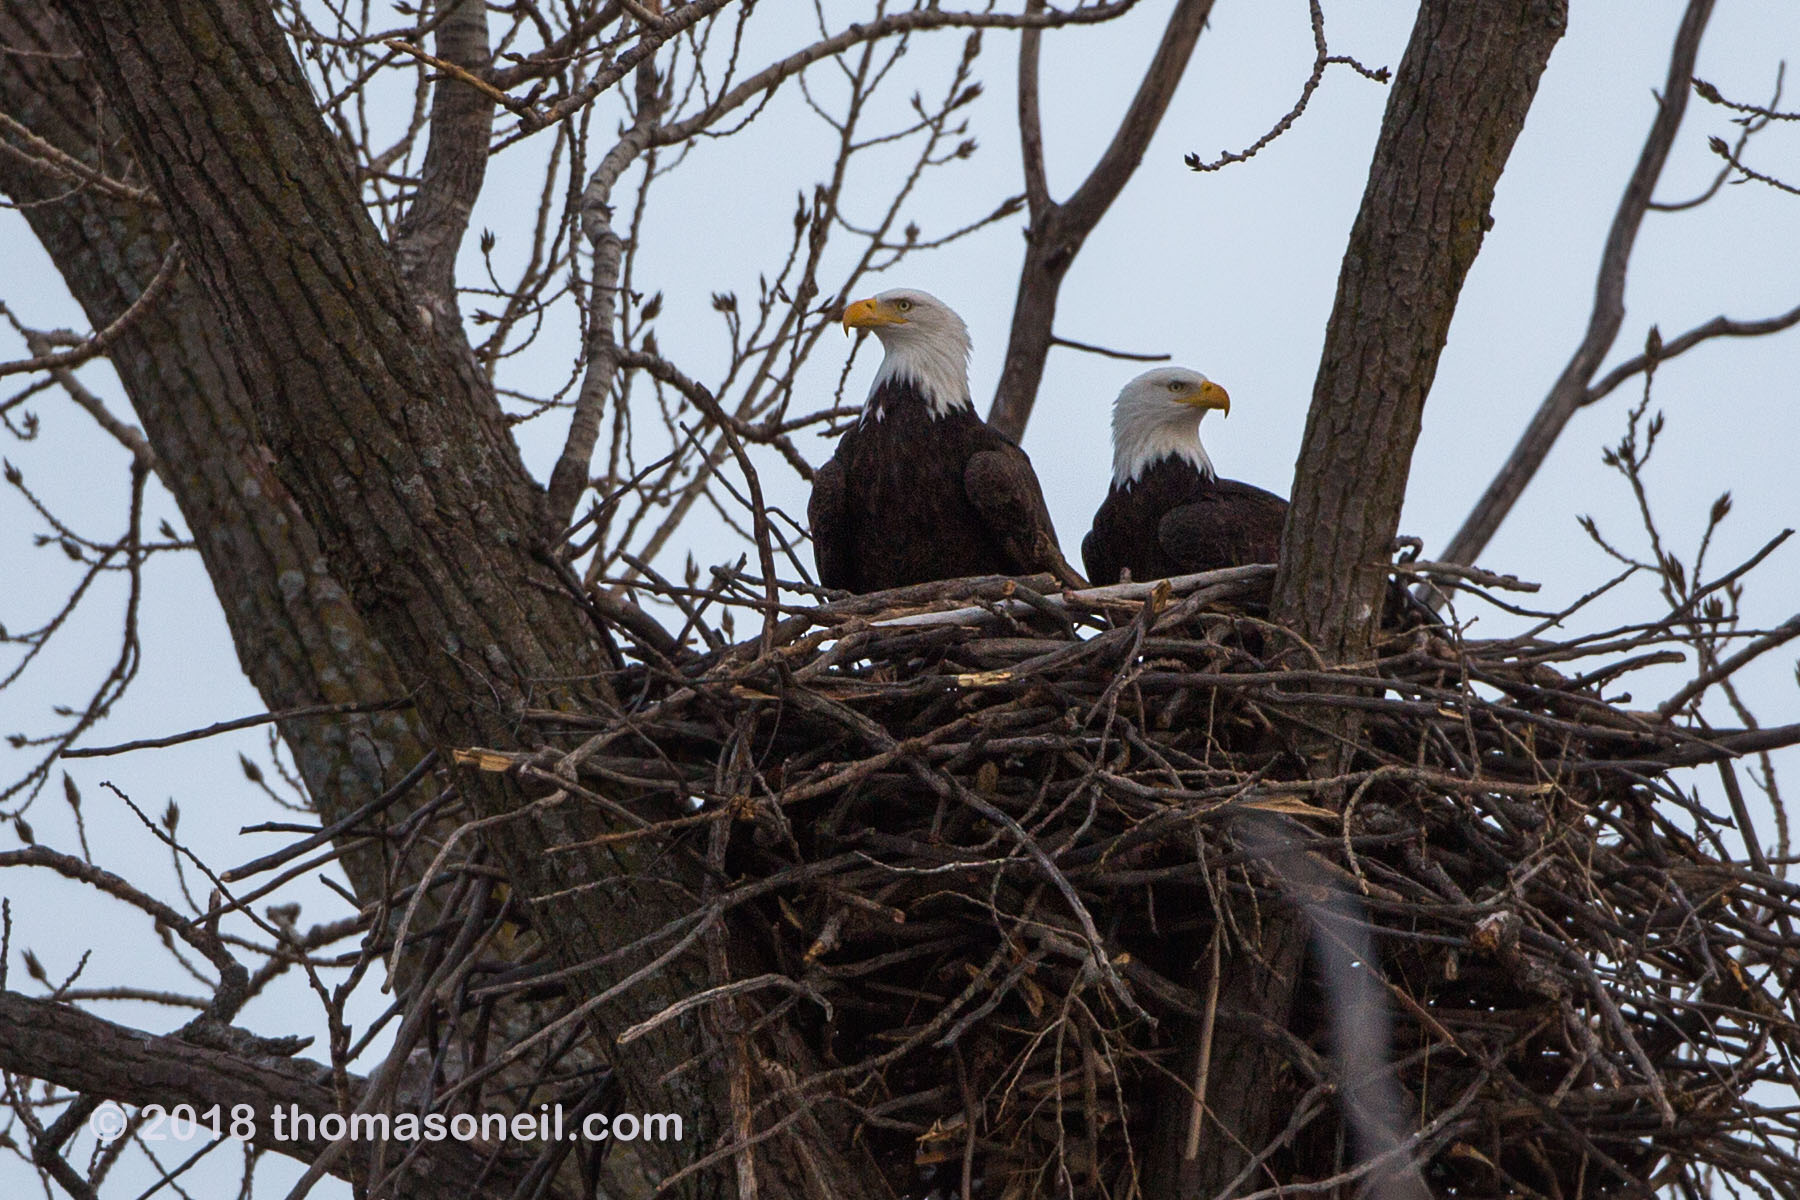 Bald eagles in nest, Loess Bluffs National Wildlife Refuge, Missouri, December 2018.  Click for next photo.